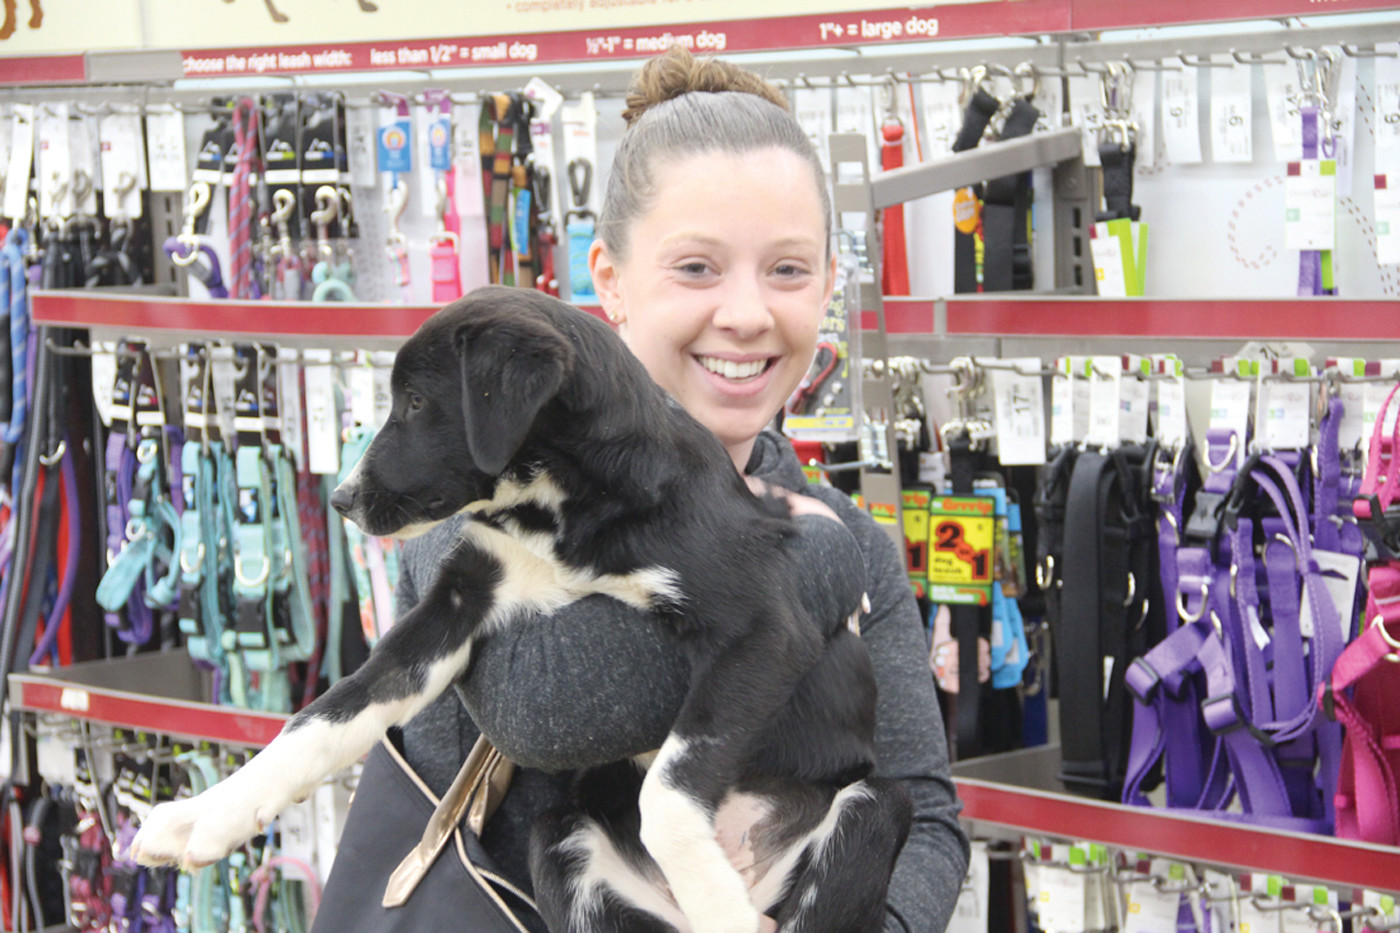 JOINING THE FAMILY: Kendra Shakan cuddles her latest adoption. She and her boyfriend, Daniel Labrie, adopted a dog from STARS about a year ago. On Saturday they added to the family.